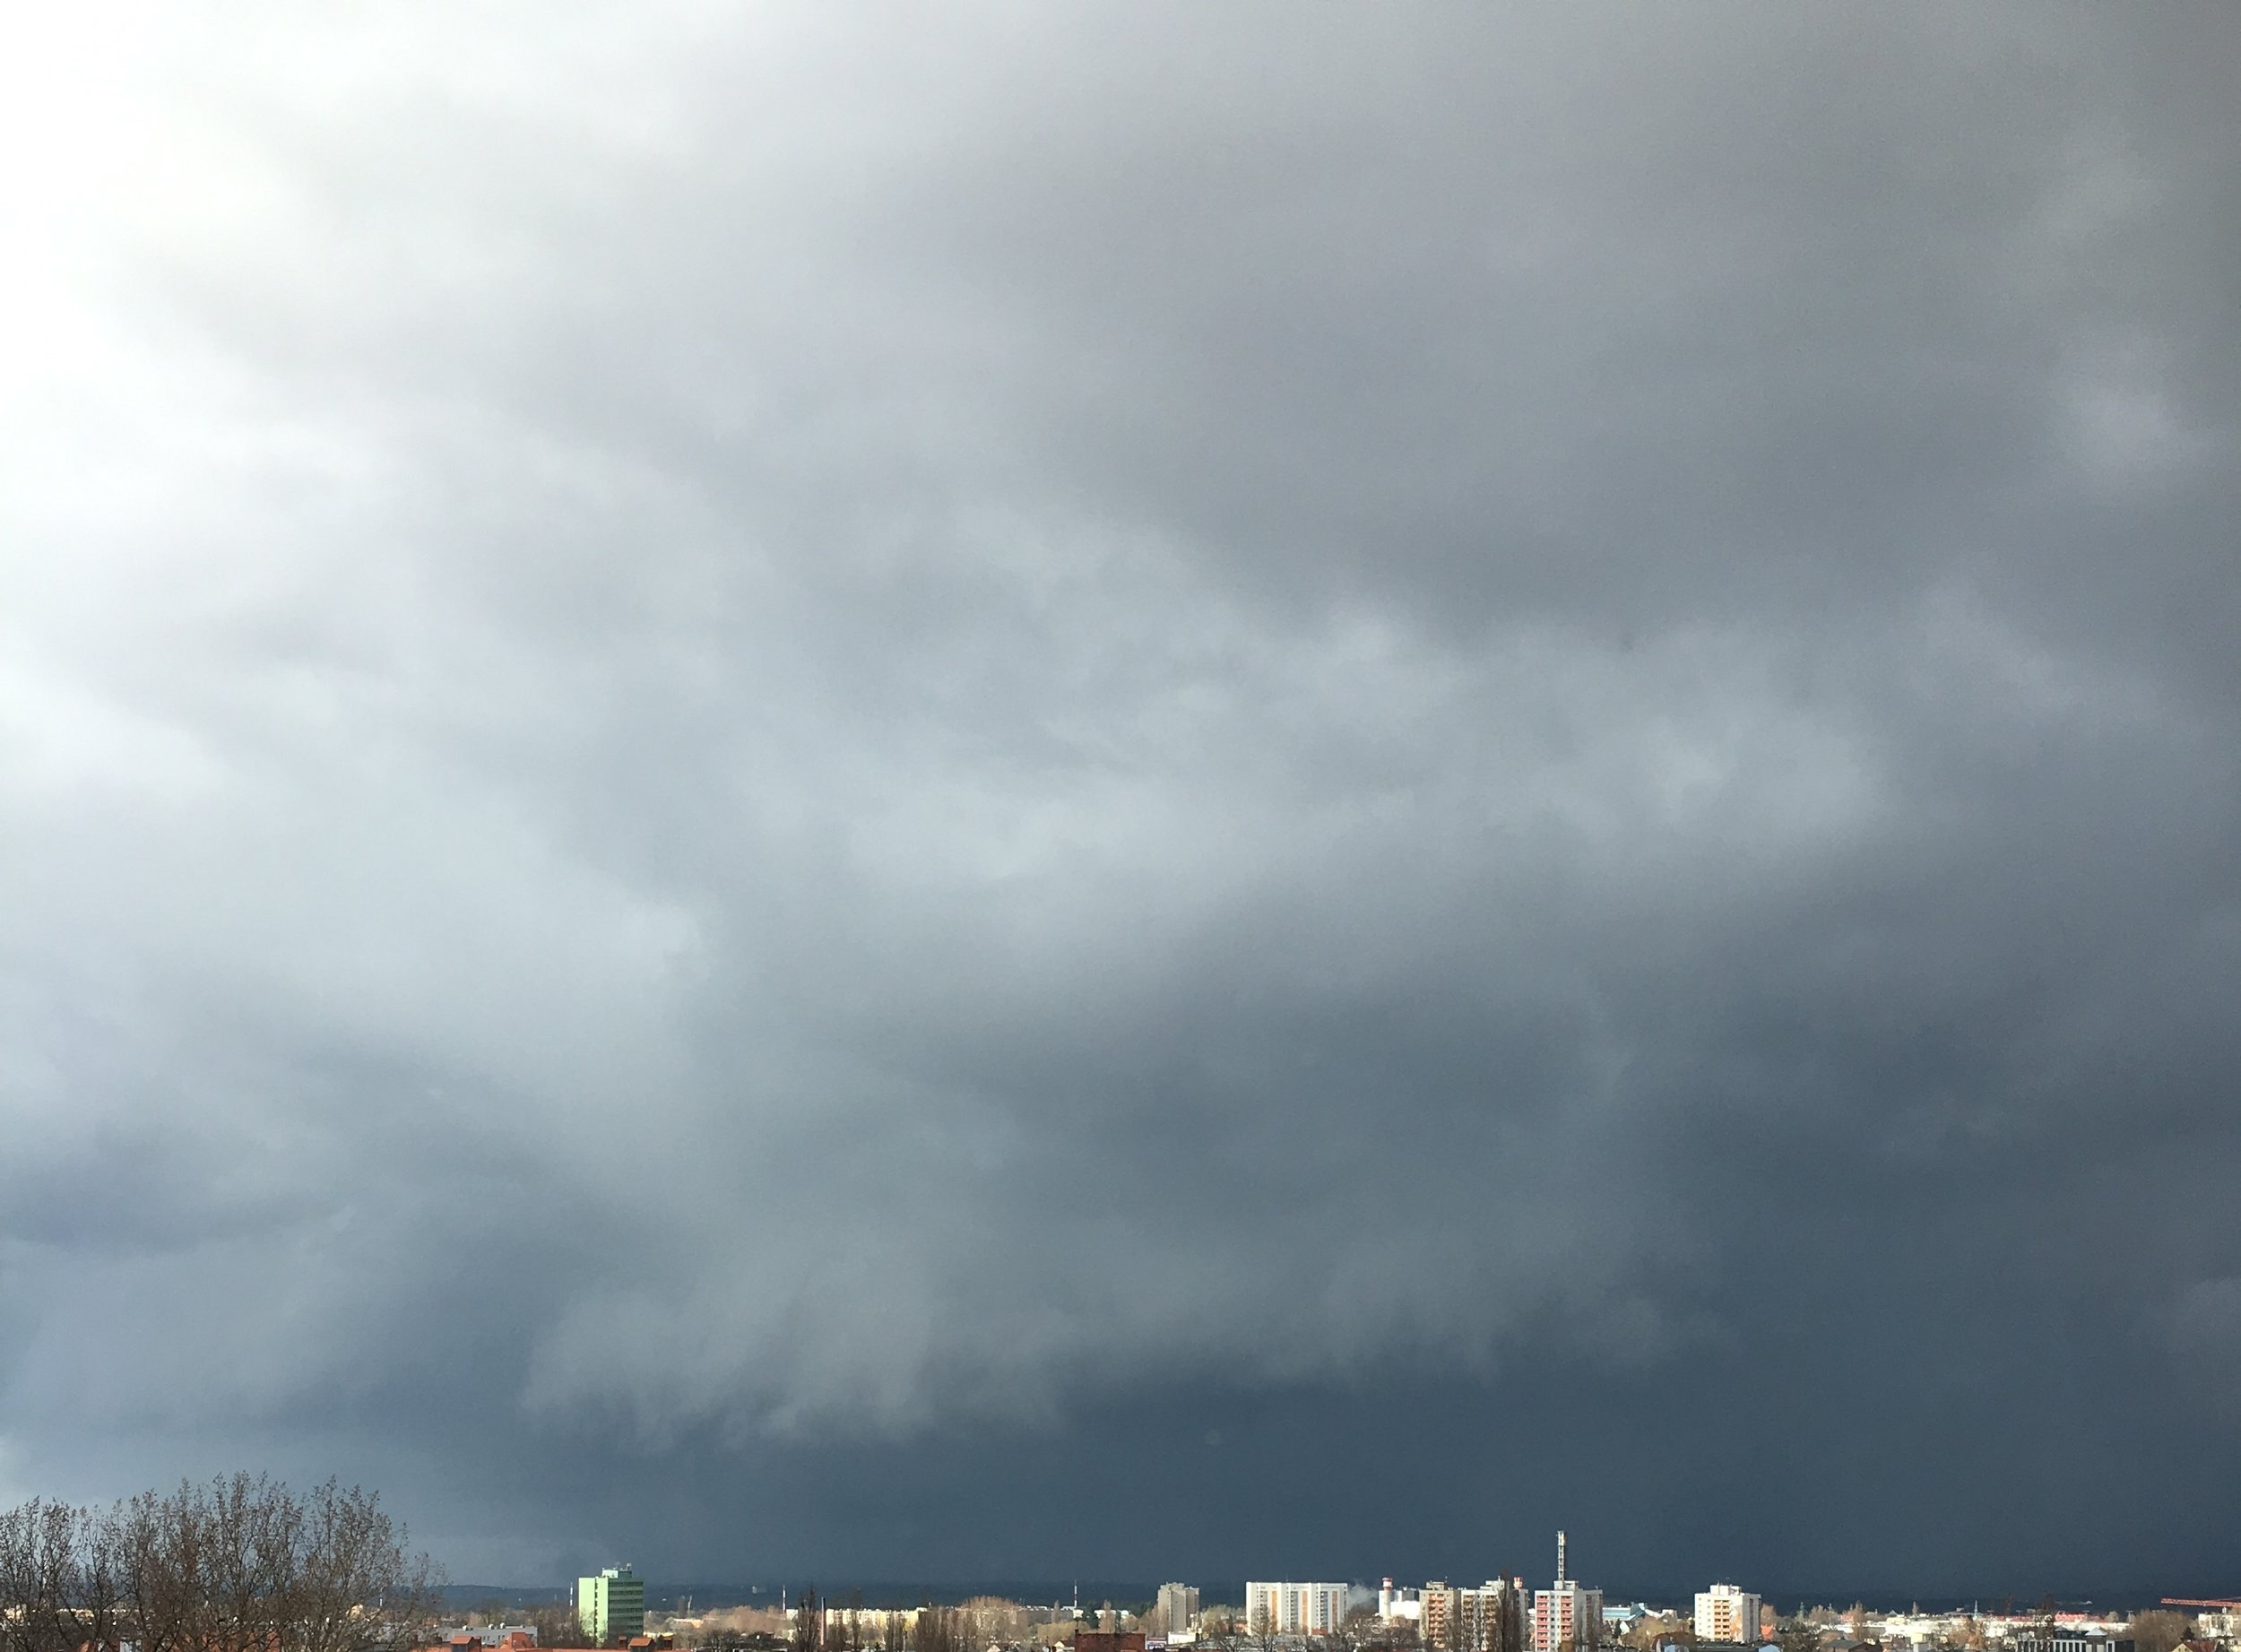 The Storm. It usually comes from the left, bypasses the city in a wide arc and leaves us without a drop of rain